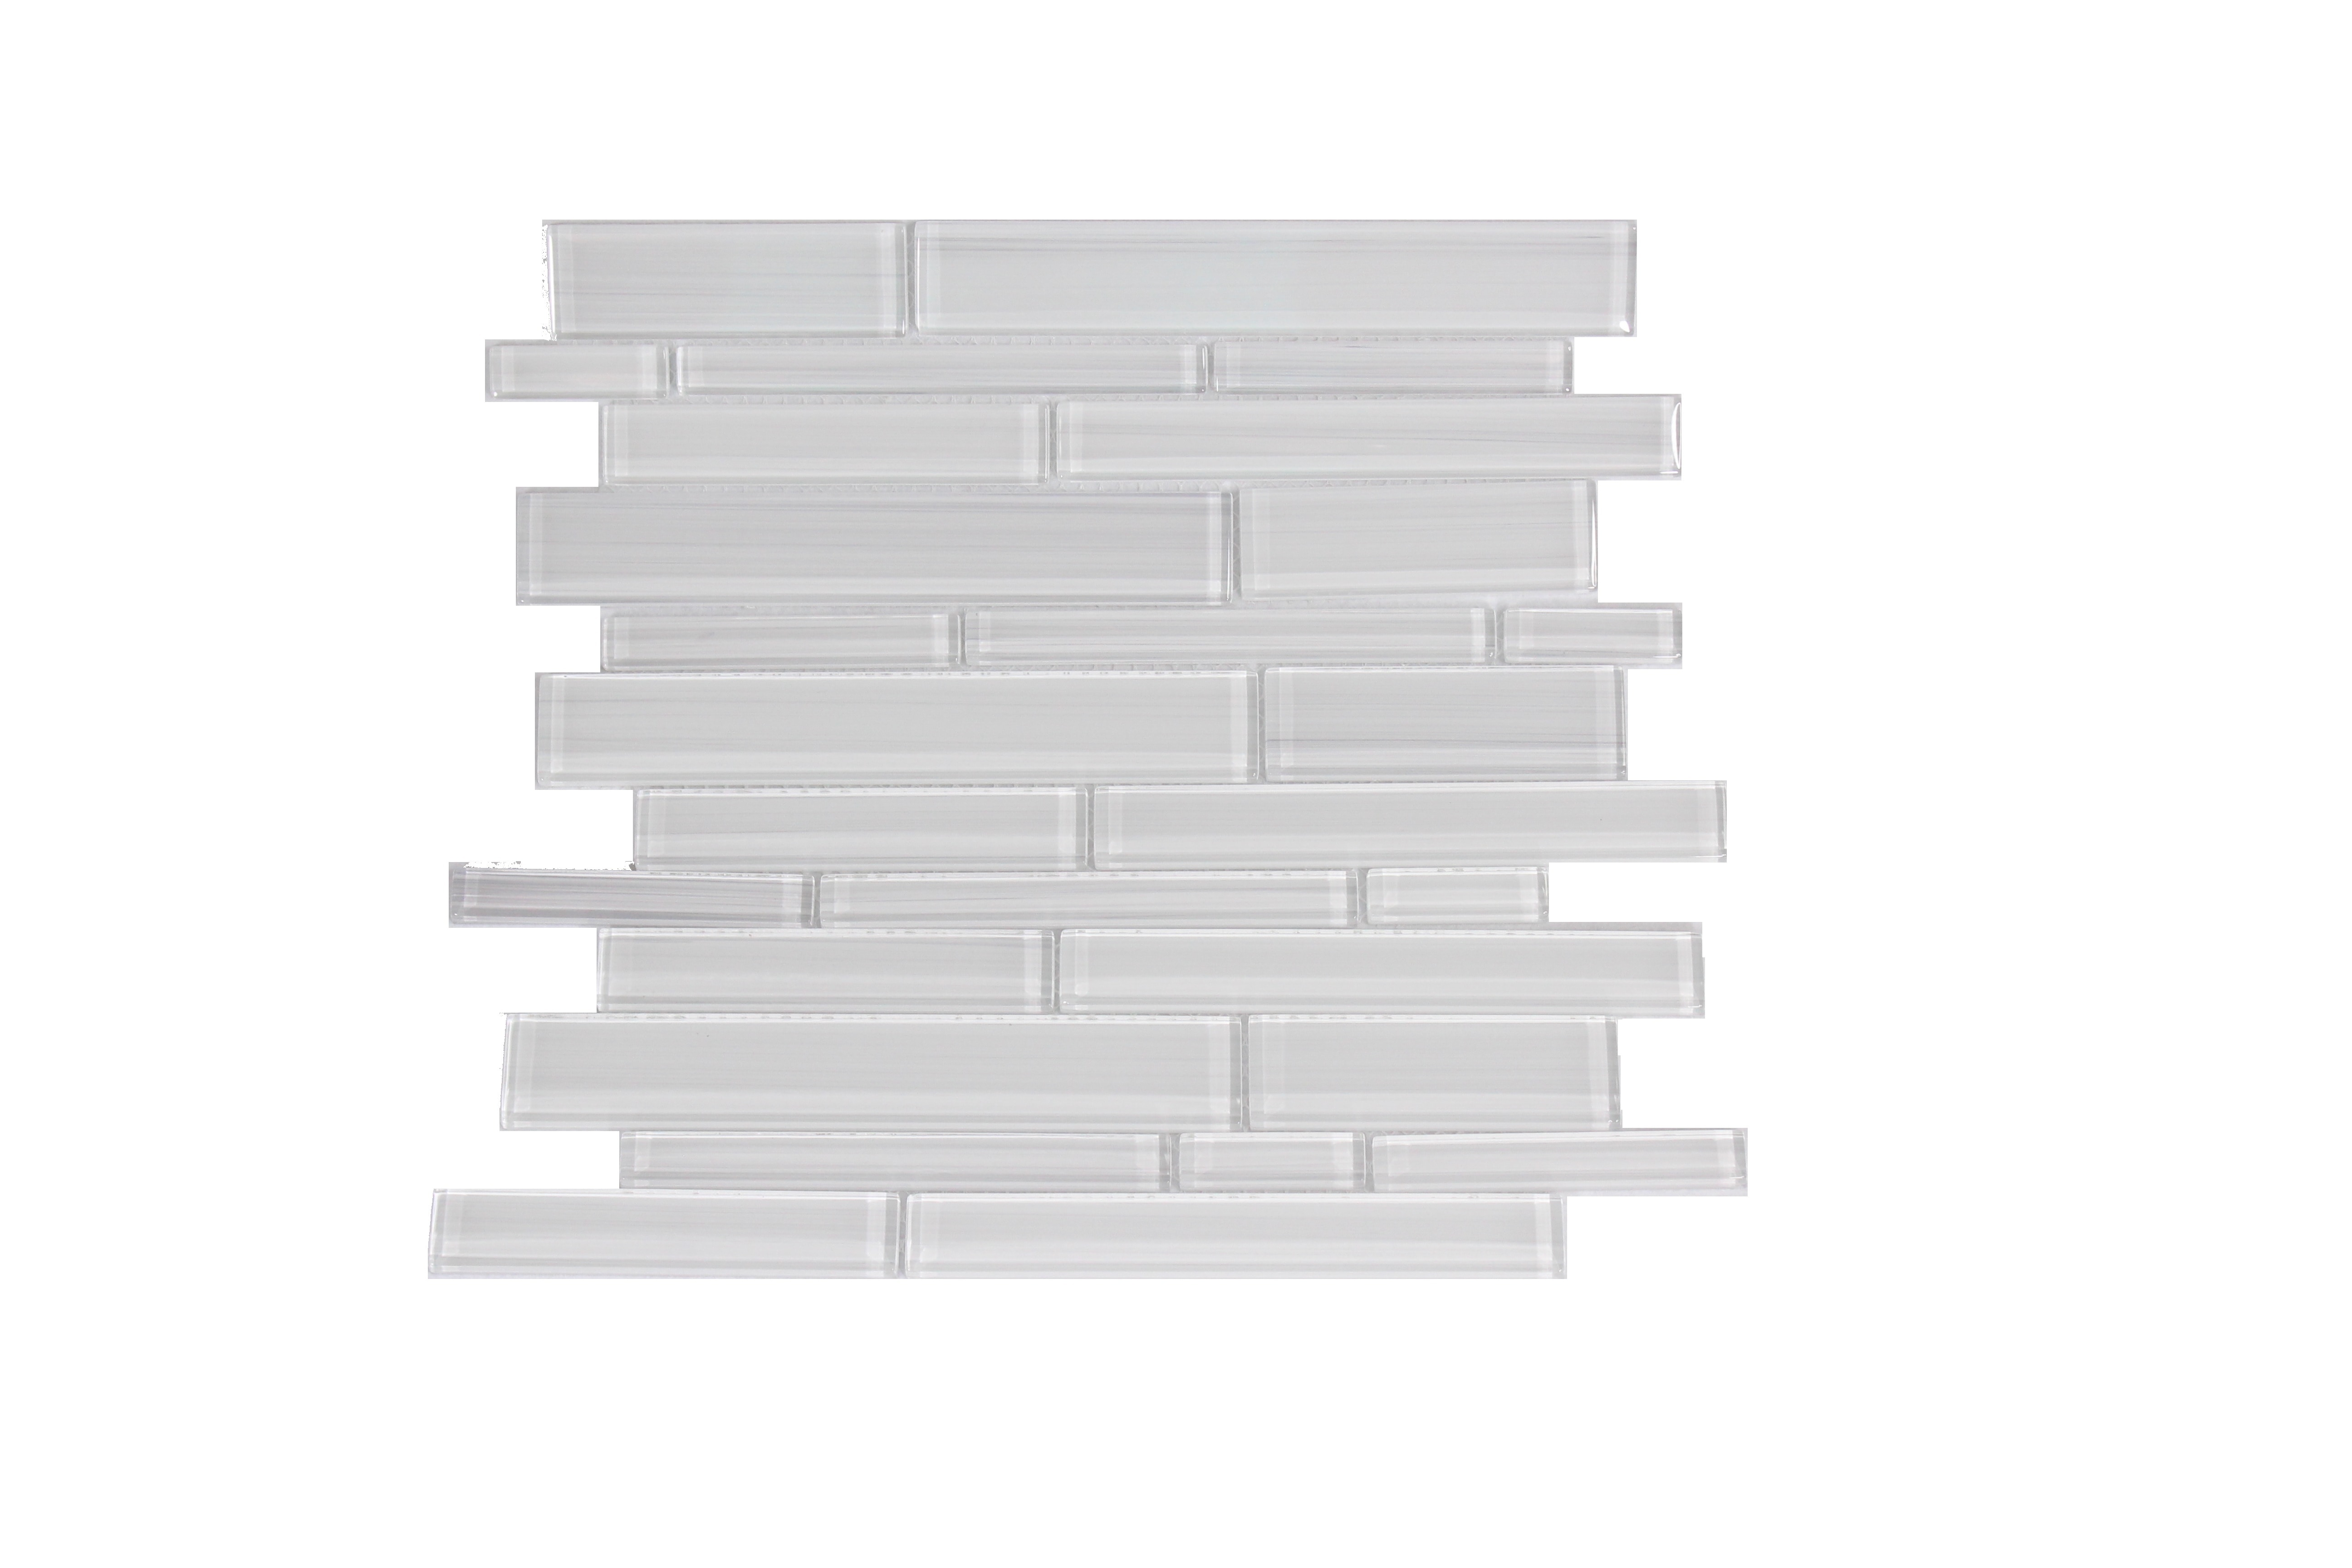 Glass Mosaic / 14 x 12 x 0.31 inches / Glossy Hand Painted Interlocking Random Sized Glass Mosaic Tile In White 0